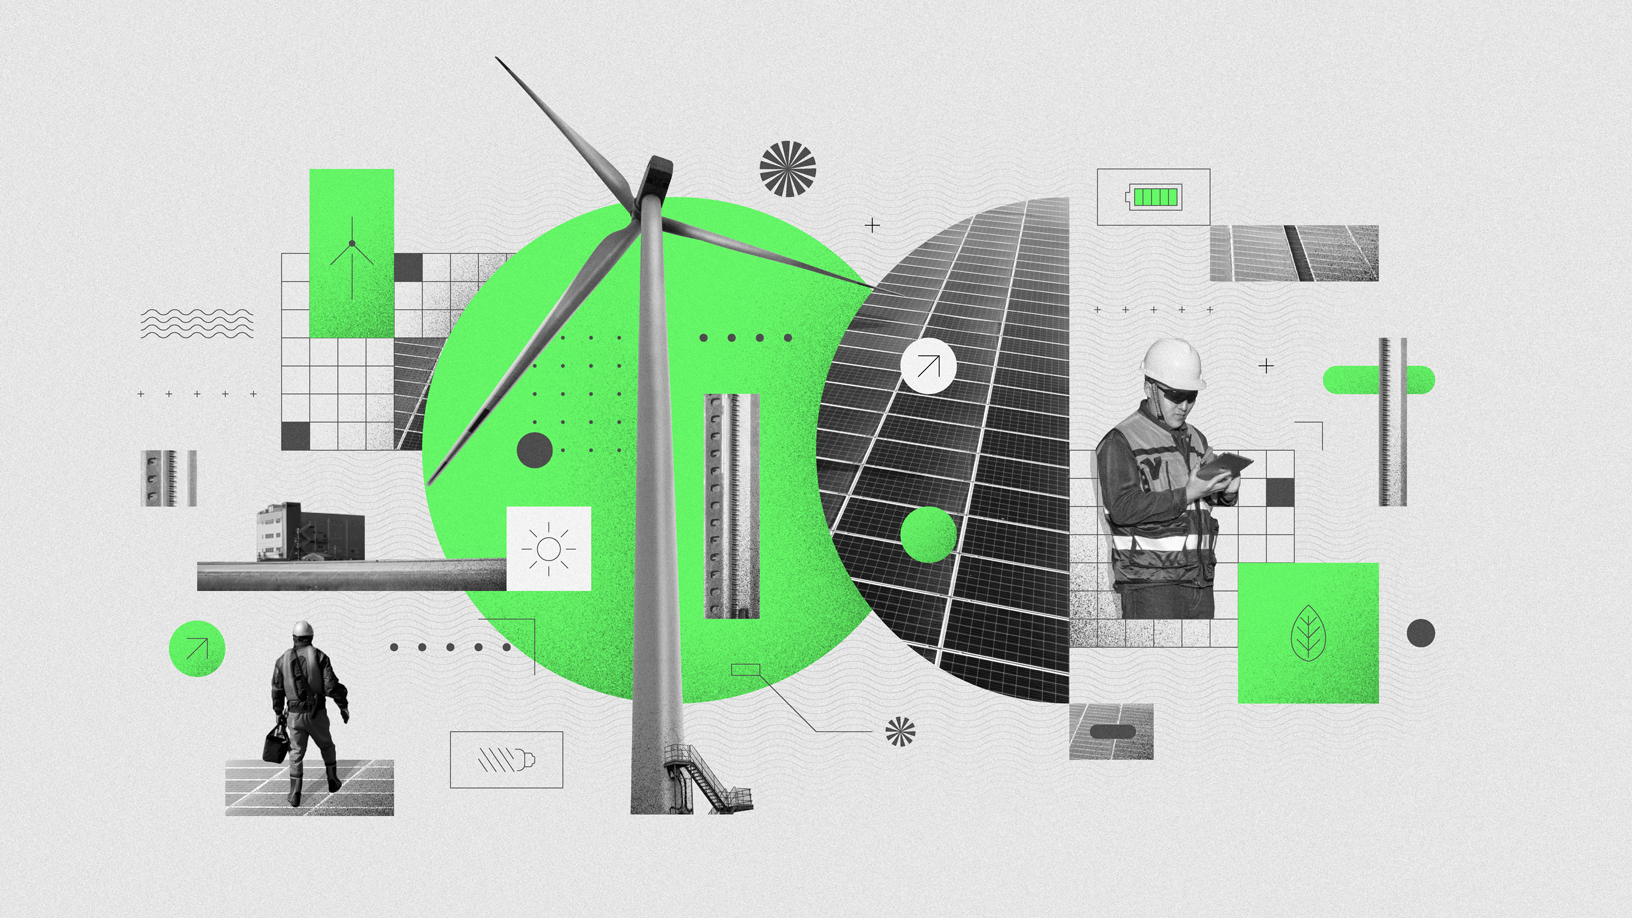 Apple-suppliers-clean-energy-illustration-04102019